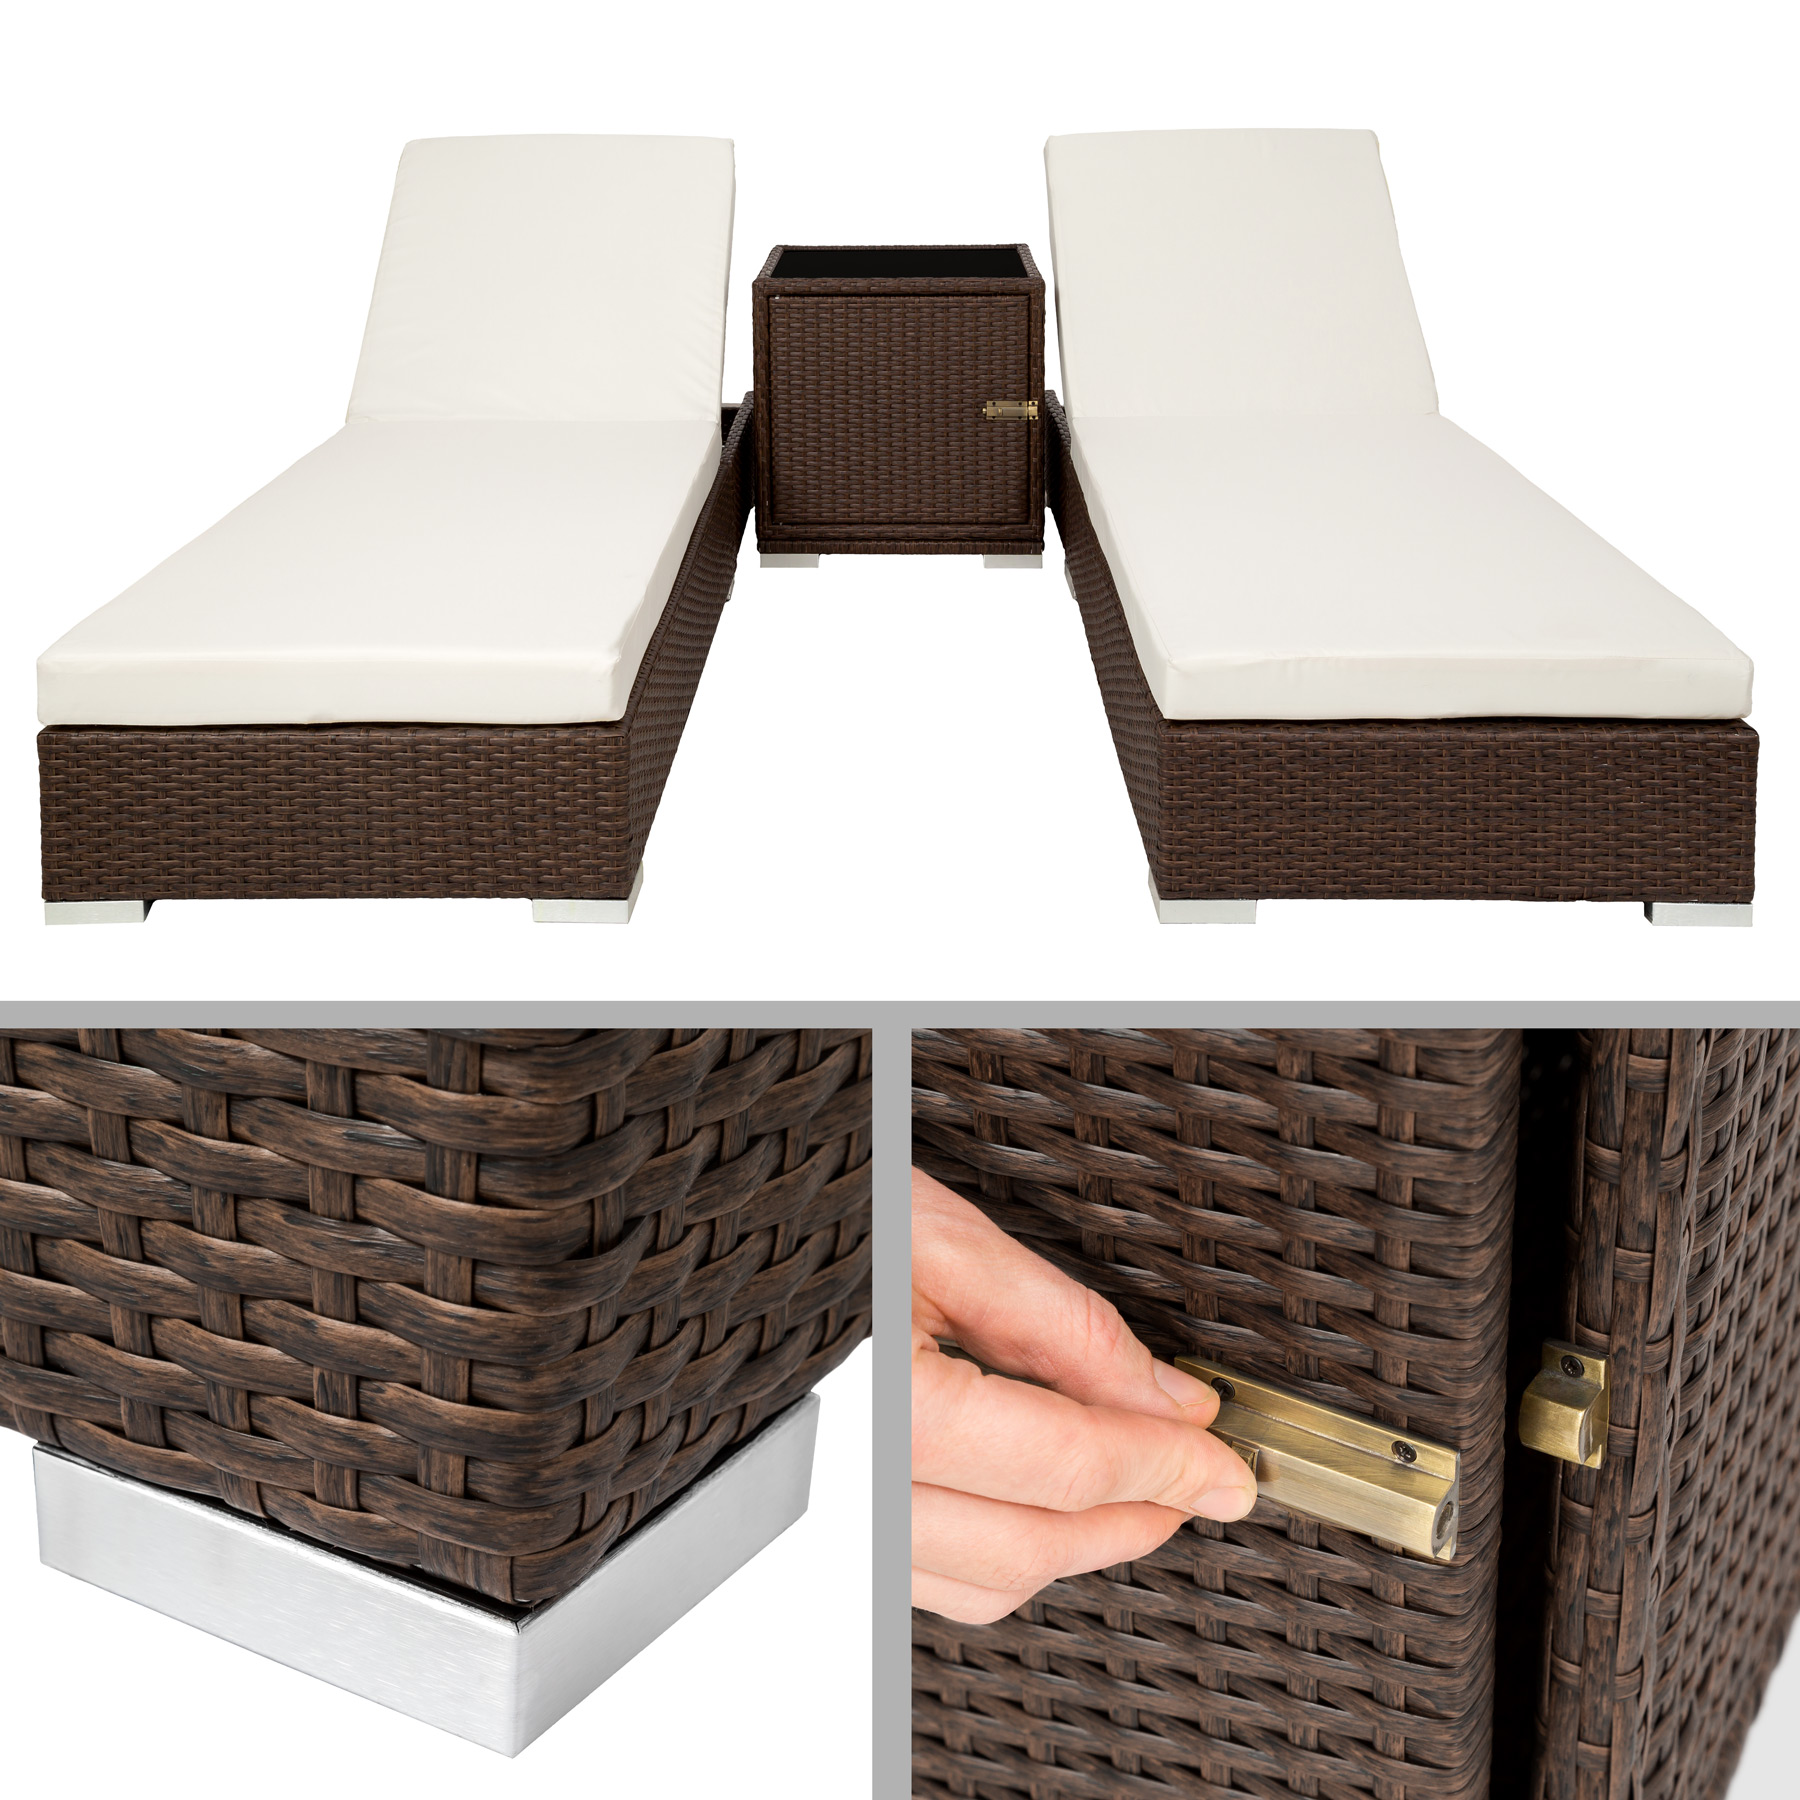 2x alu polyrattan sonnenliege tisch gartenliege rattan gartenm bel set antik. Black Bedroom Furniture Sets. Home Design Ideas